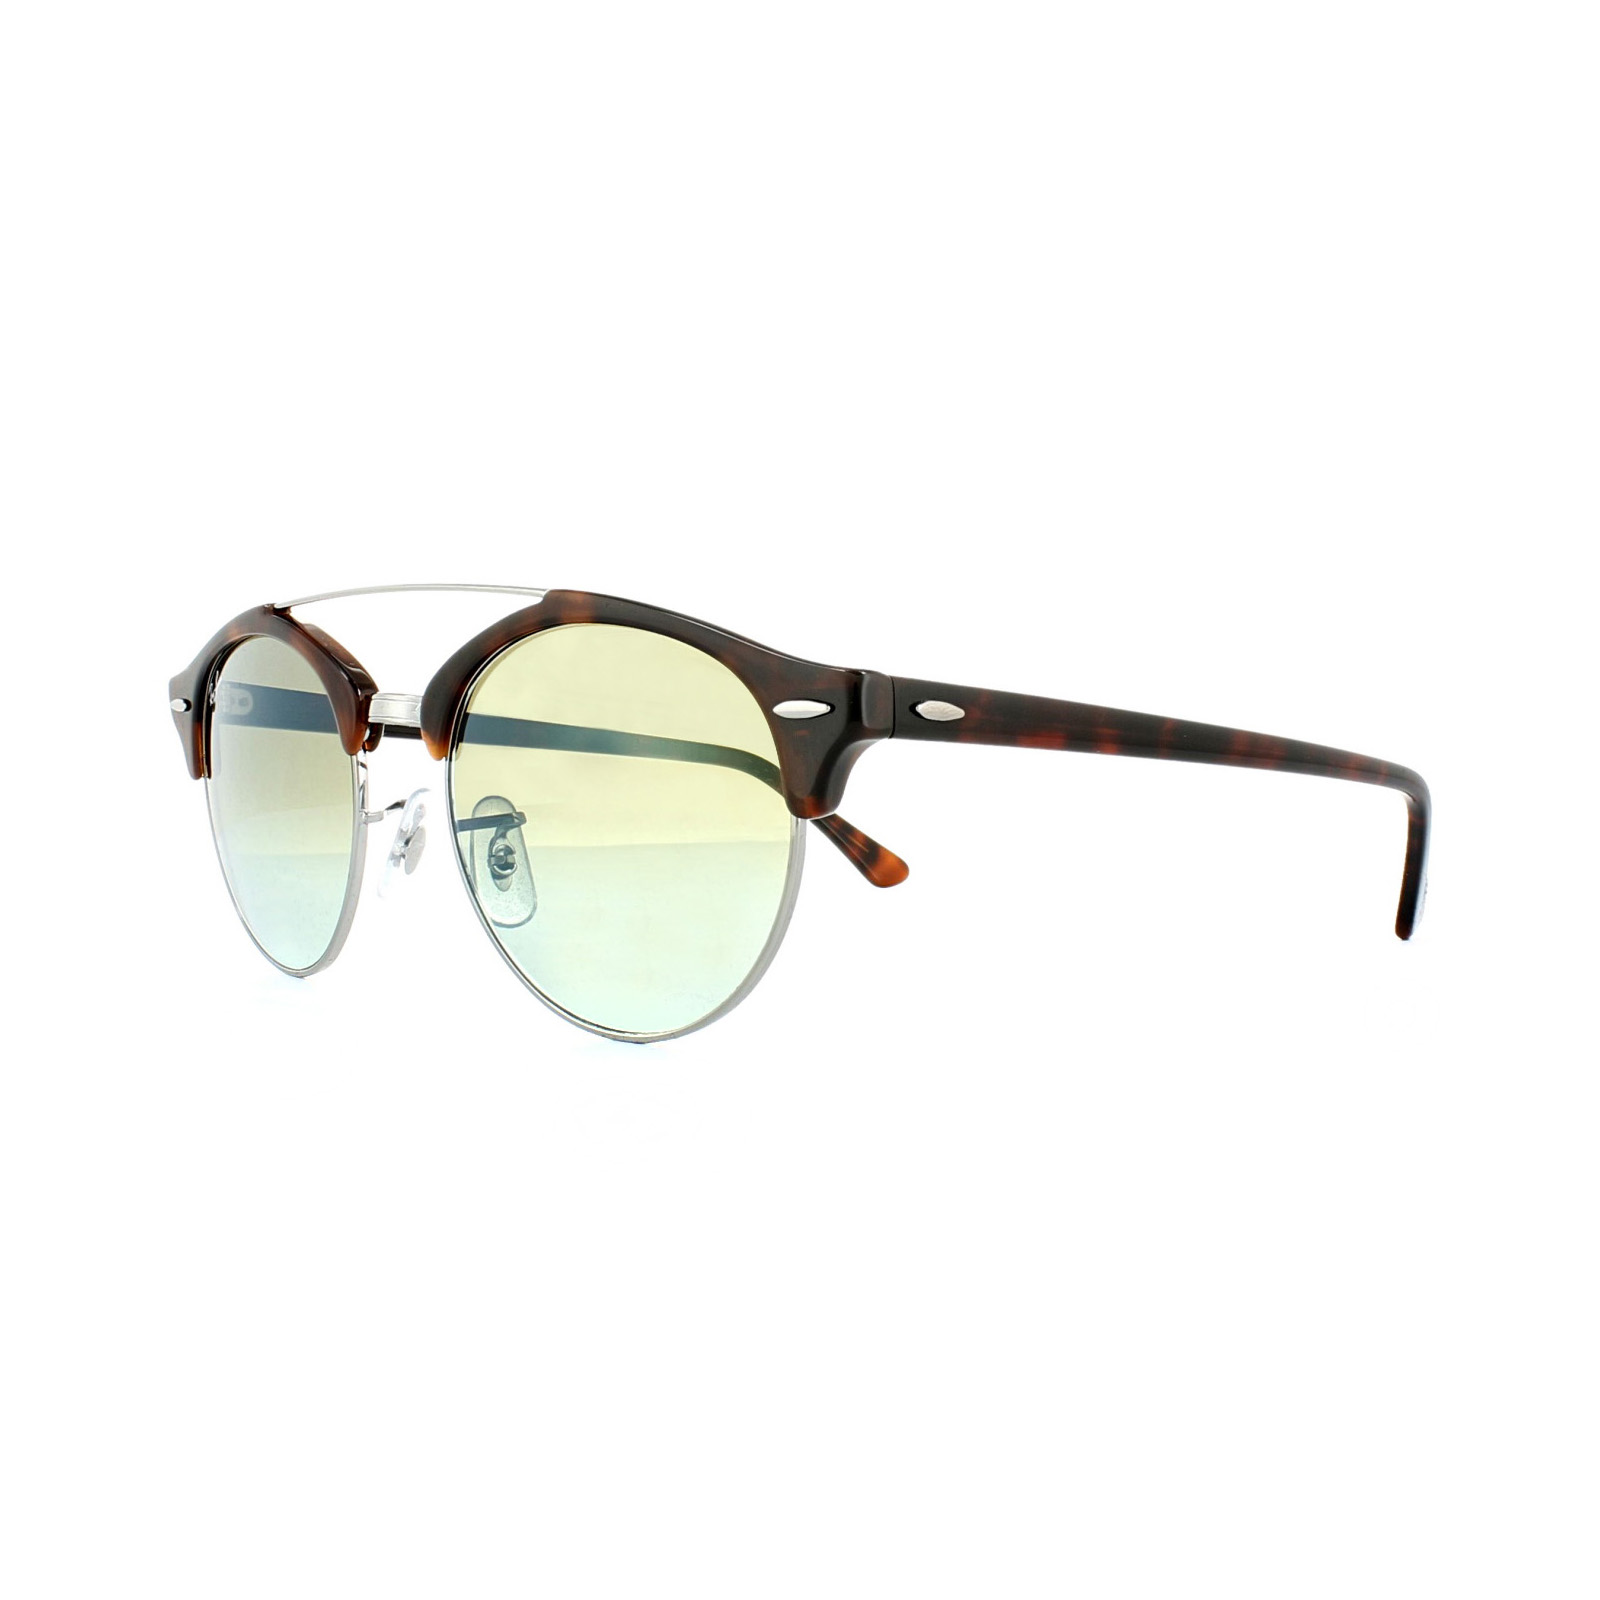 b59b9cbfd3e Sentinel Ray-Ban Sunglasses Clubround Double Bridge 4346 62519J Havana  Green Gradient